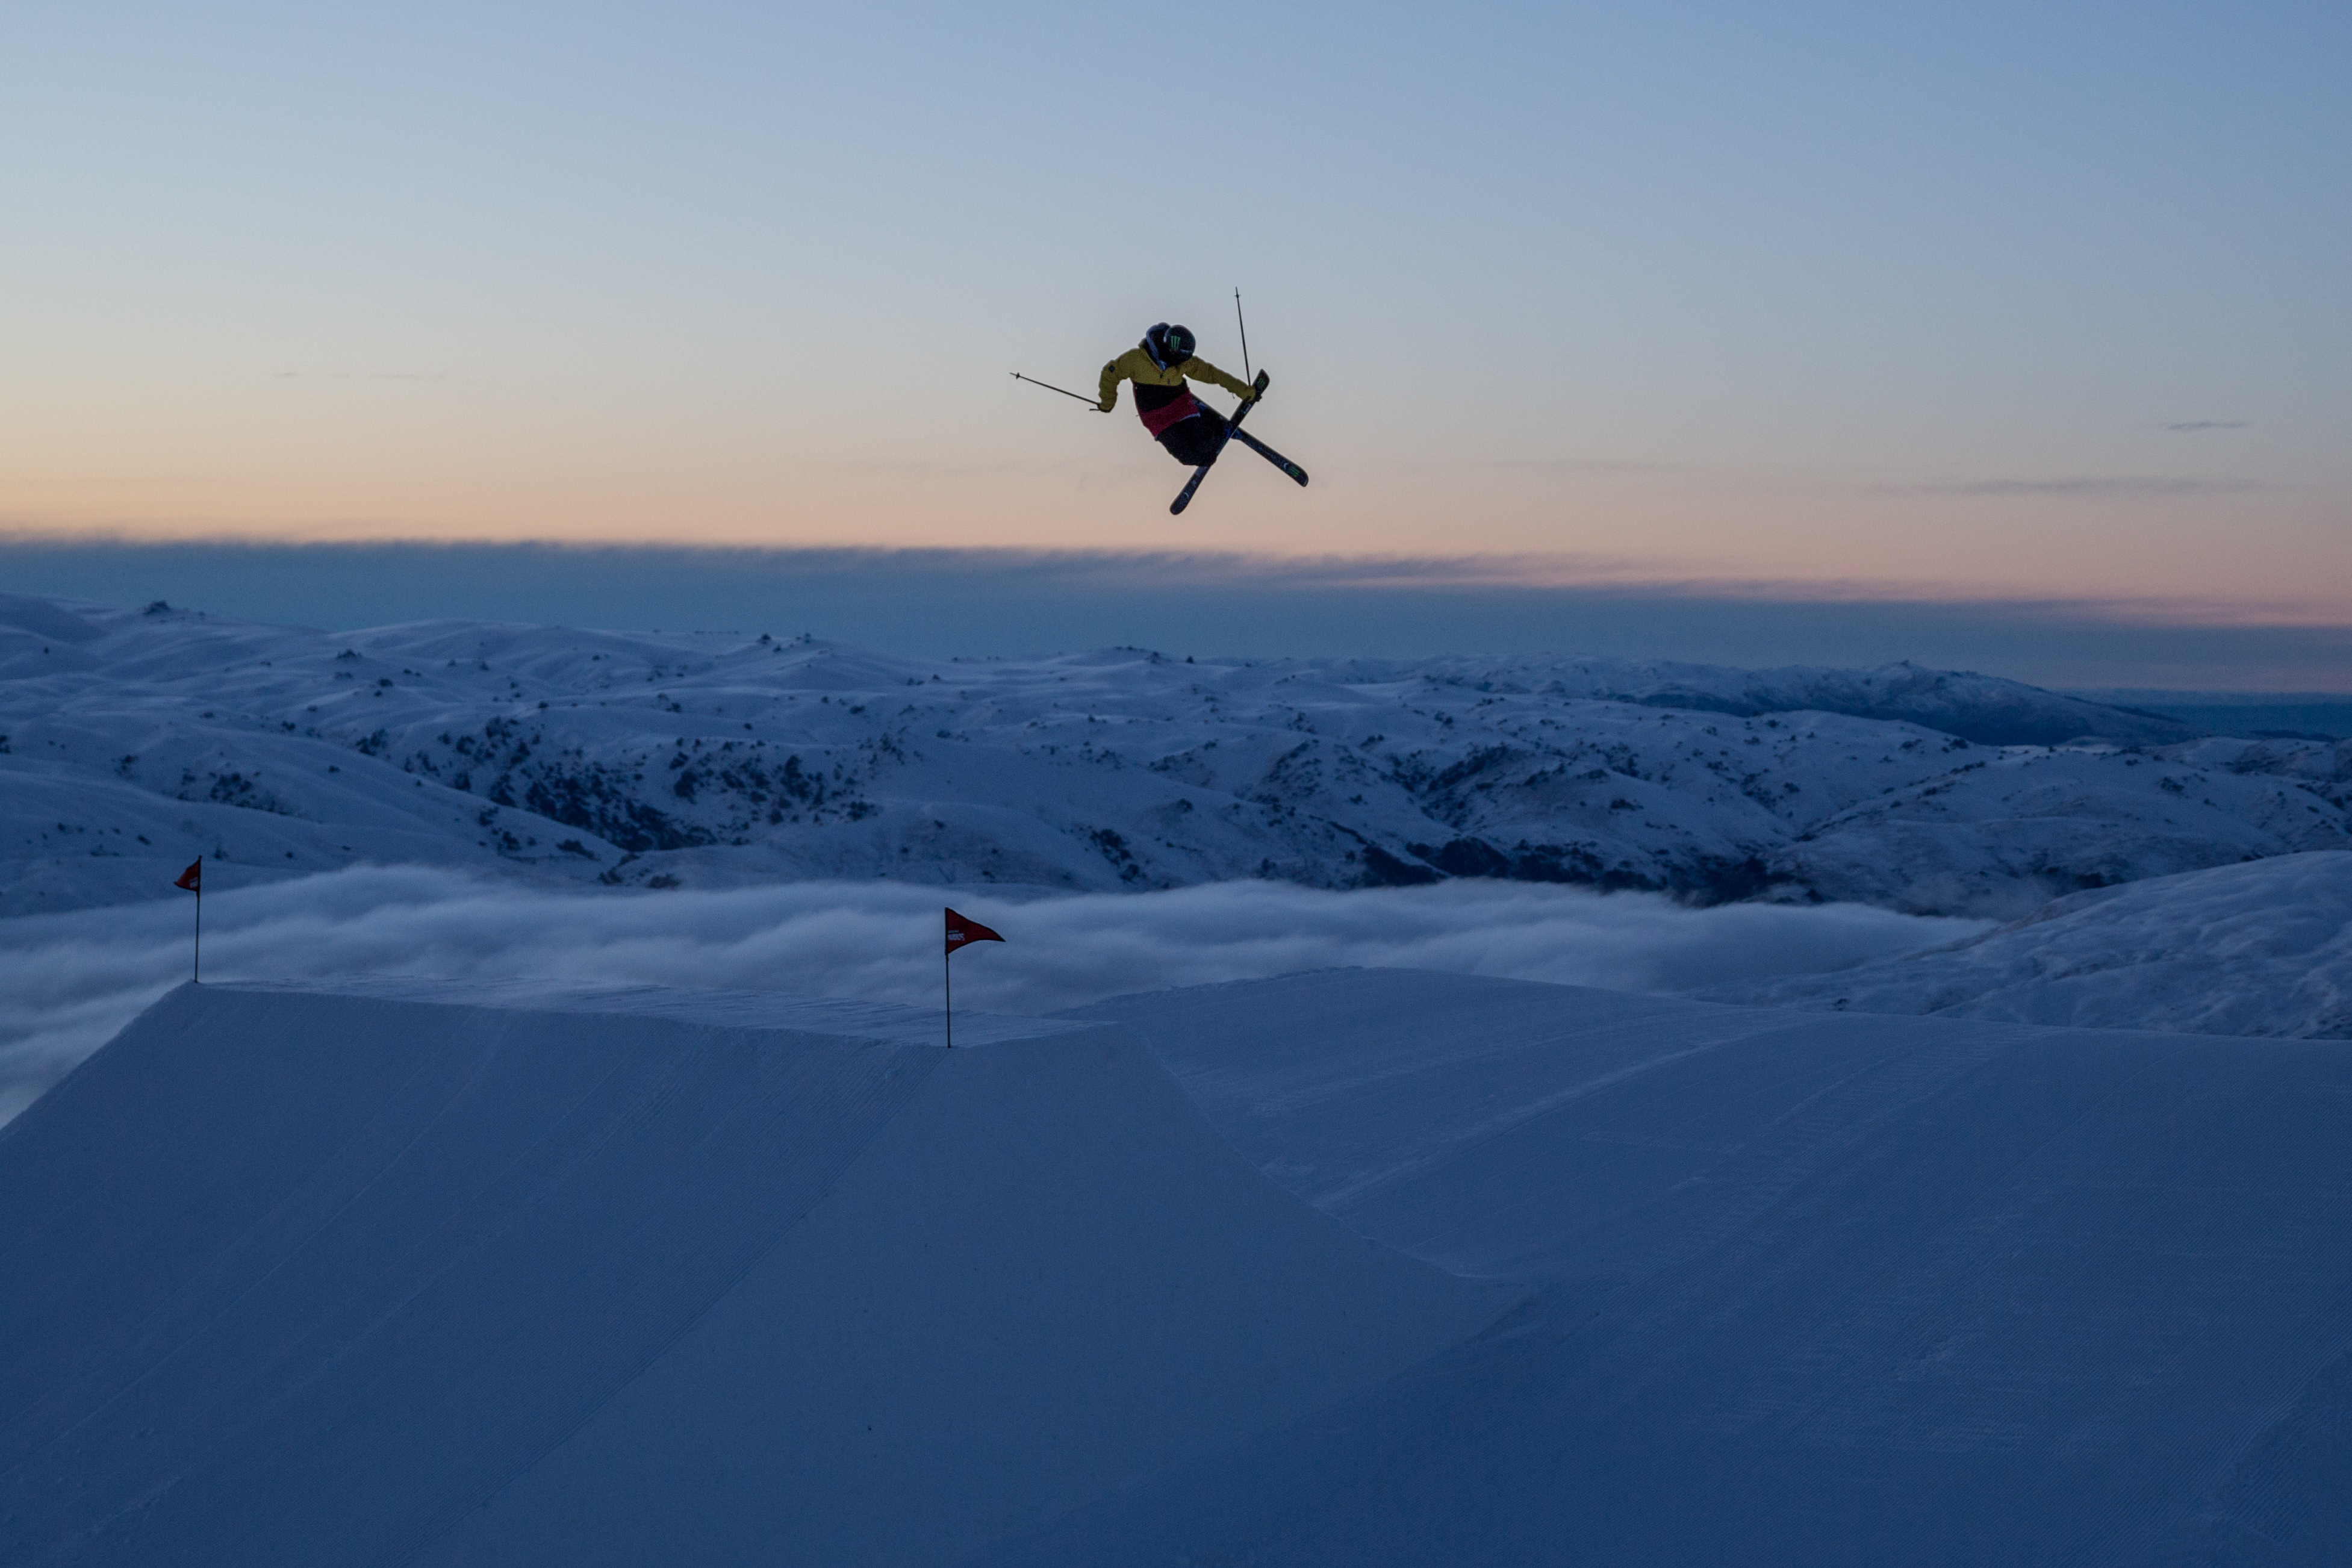 cardrona big air jump ski snowboard